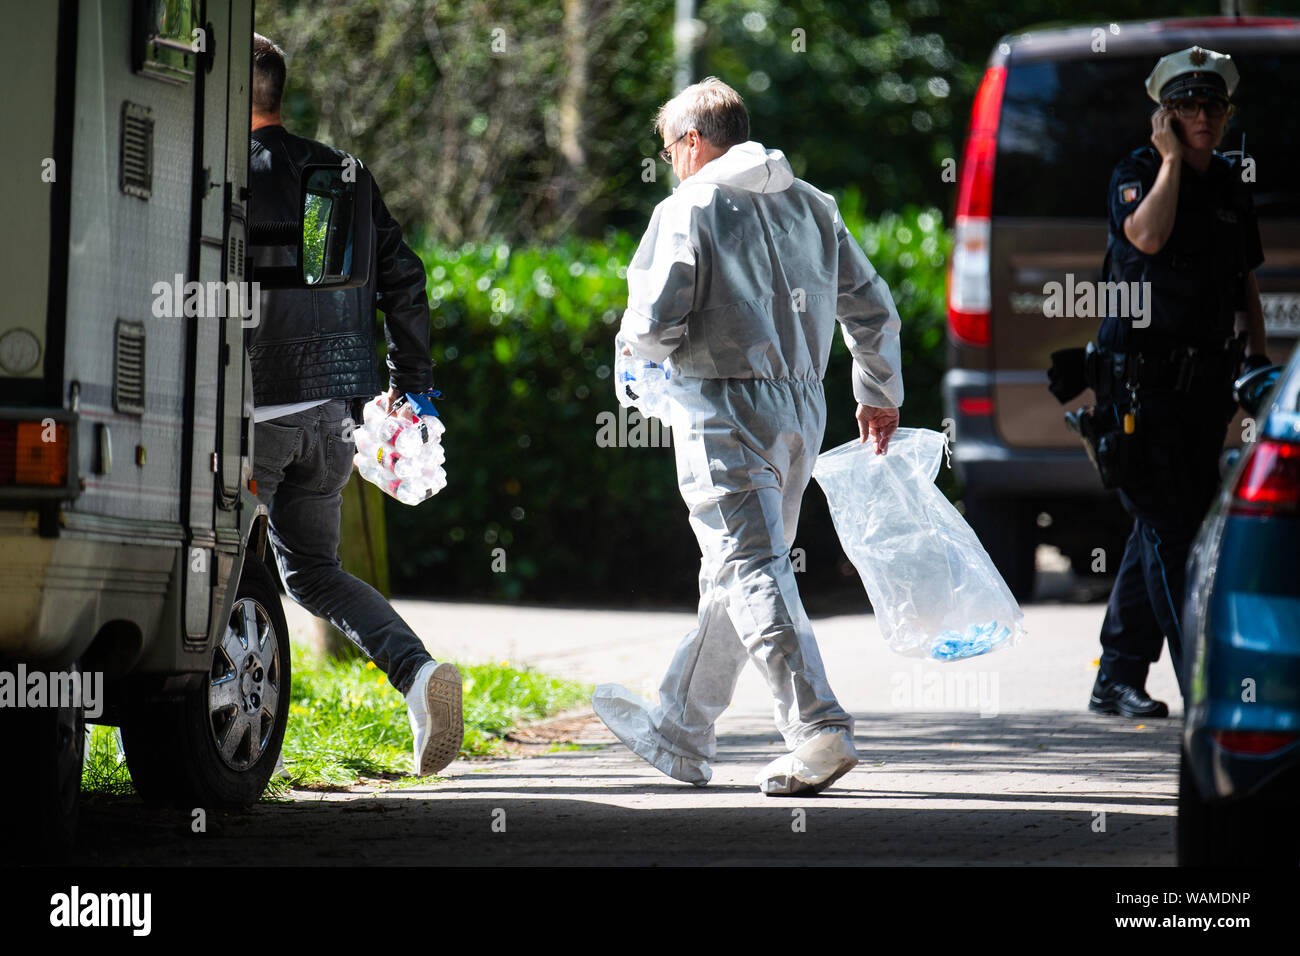 Tornesch Germany 21st Aug 2019 Forensic Officers And Police Officers Go To A House Where The Body Of A Woman Was Found According To The Police The Woman Was Obviously The Victim